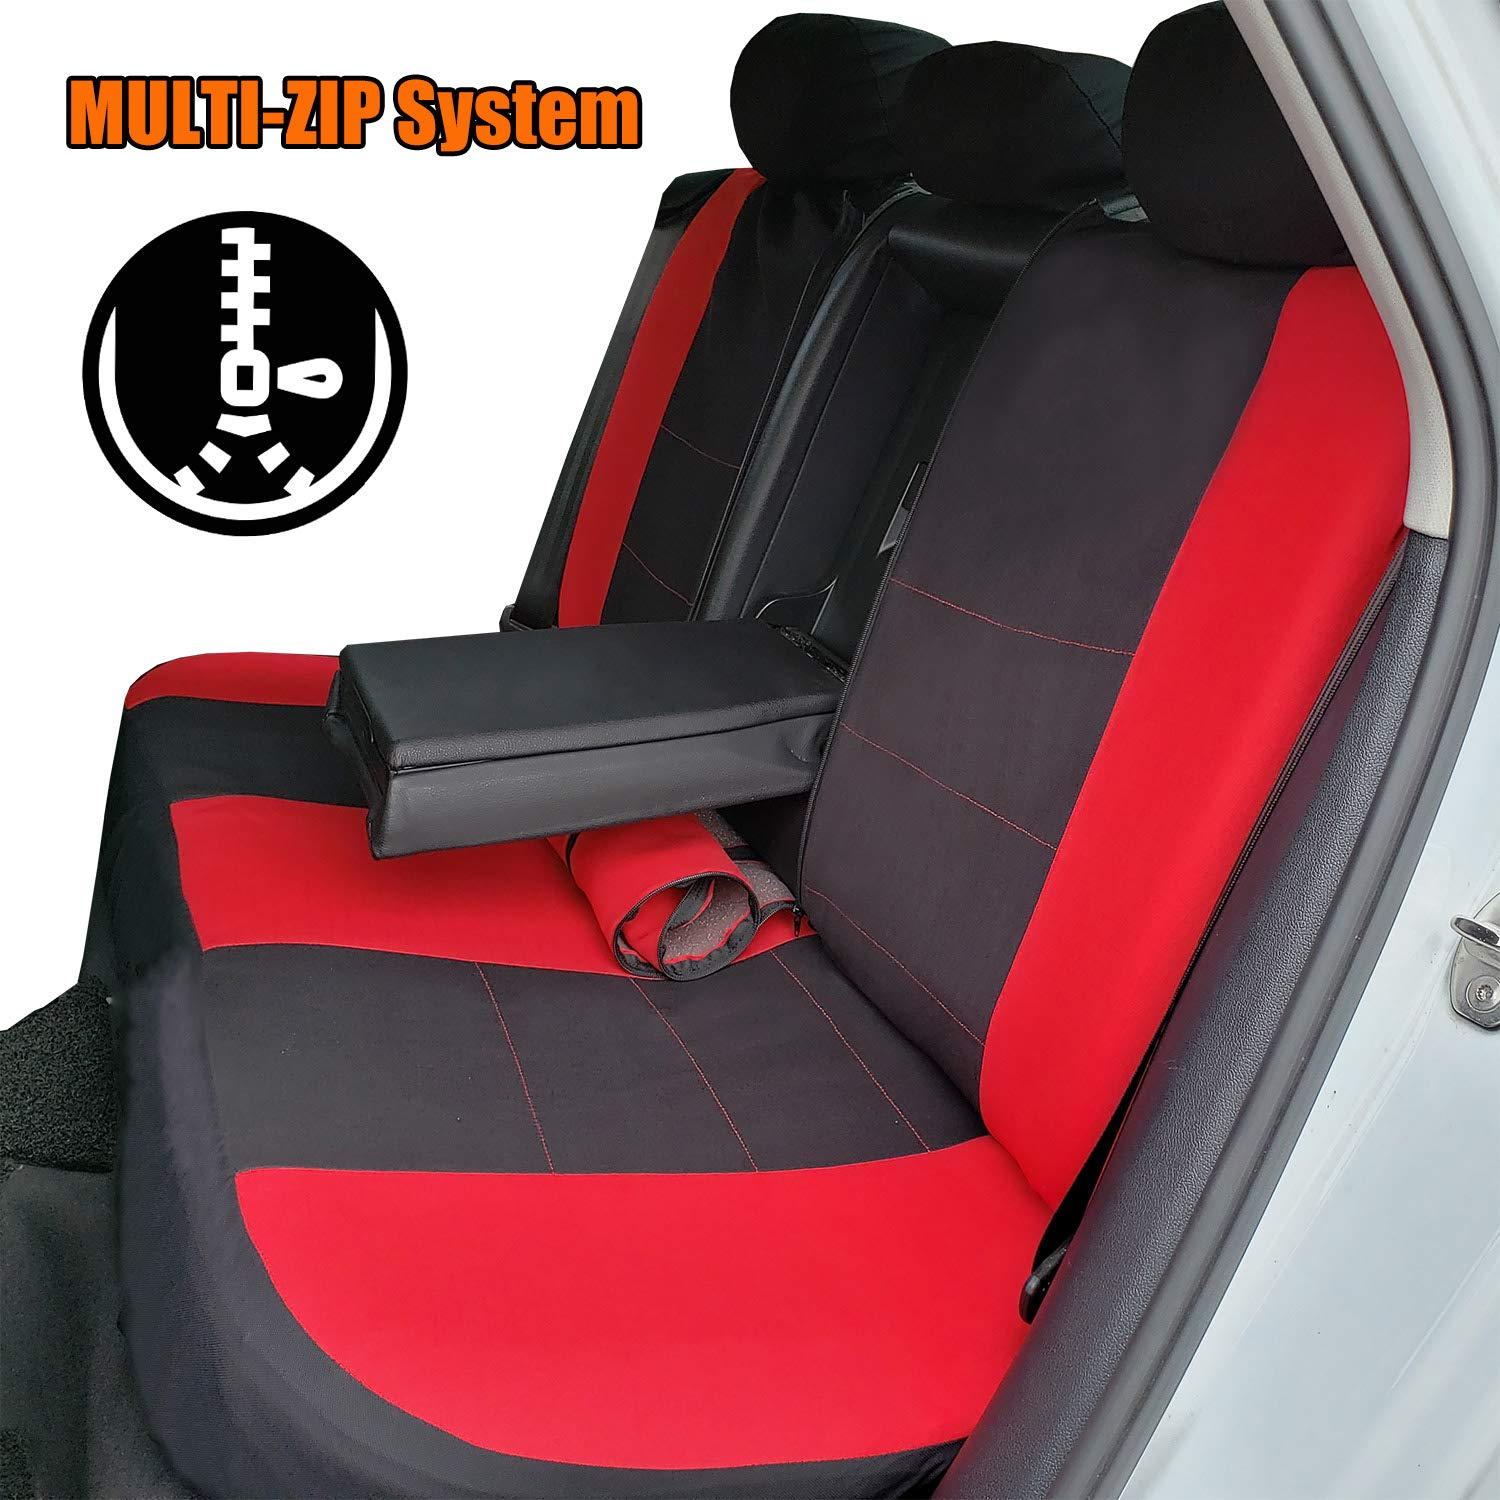 Quick Install Seat Airbag /& Split Ready SUV Full Set Seat Covers of 5 Detachable Headrests and Solid Bench Universal Auto Seat Protector Fit Most Car or Van Truck Full Coverage Car Seat Covers